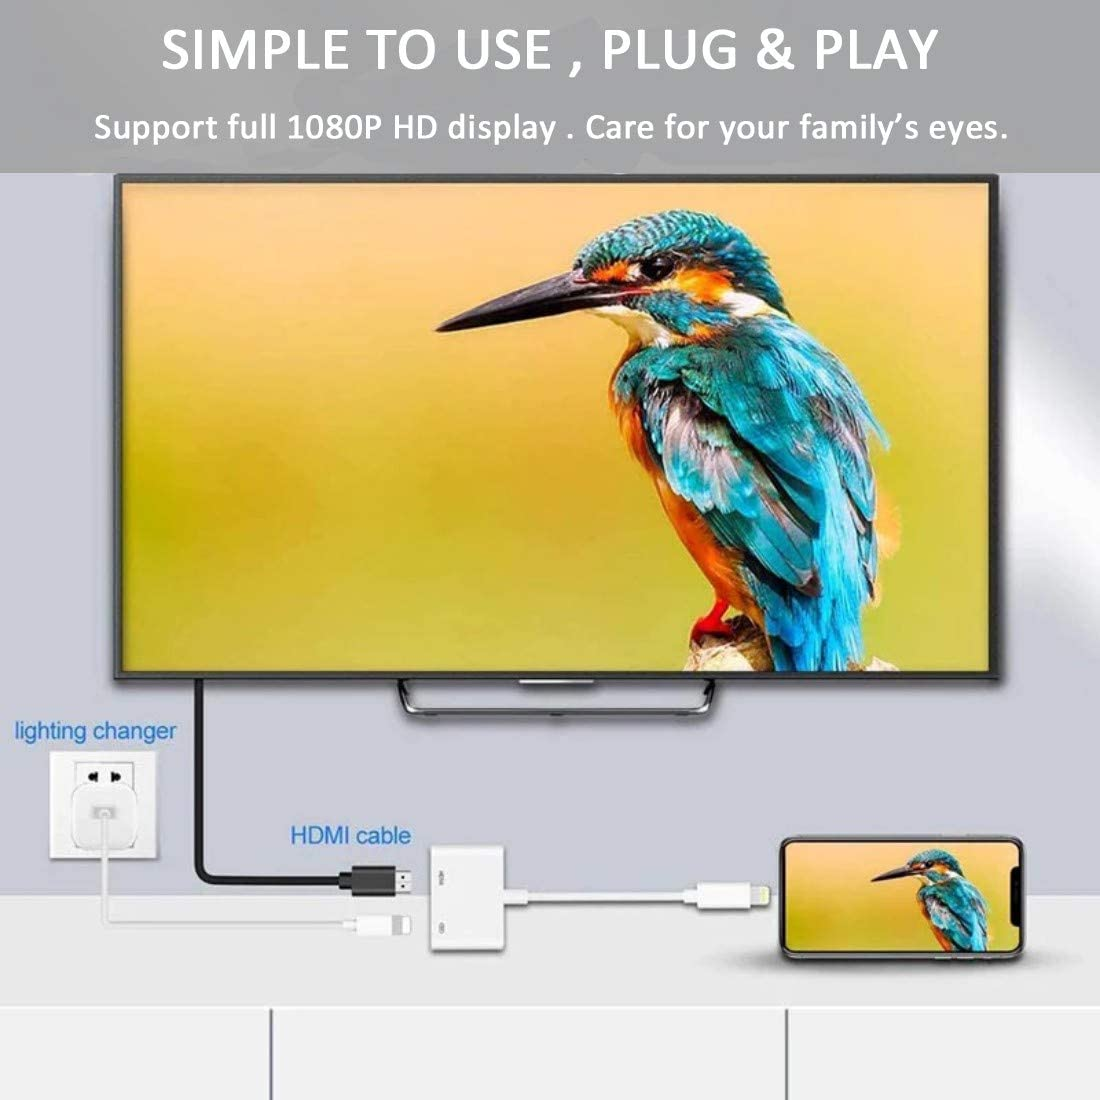 Compatible with Phone Pad to HDMI Adapter Pad Digital AV Adapter 1080p HD TV Connector Pod to TV Compatible with Phone Xs Max XR 8 Sync Screen HDMI Connector Adaptor for Phone